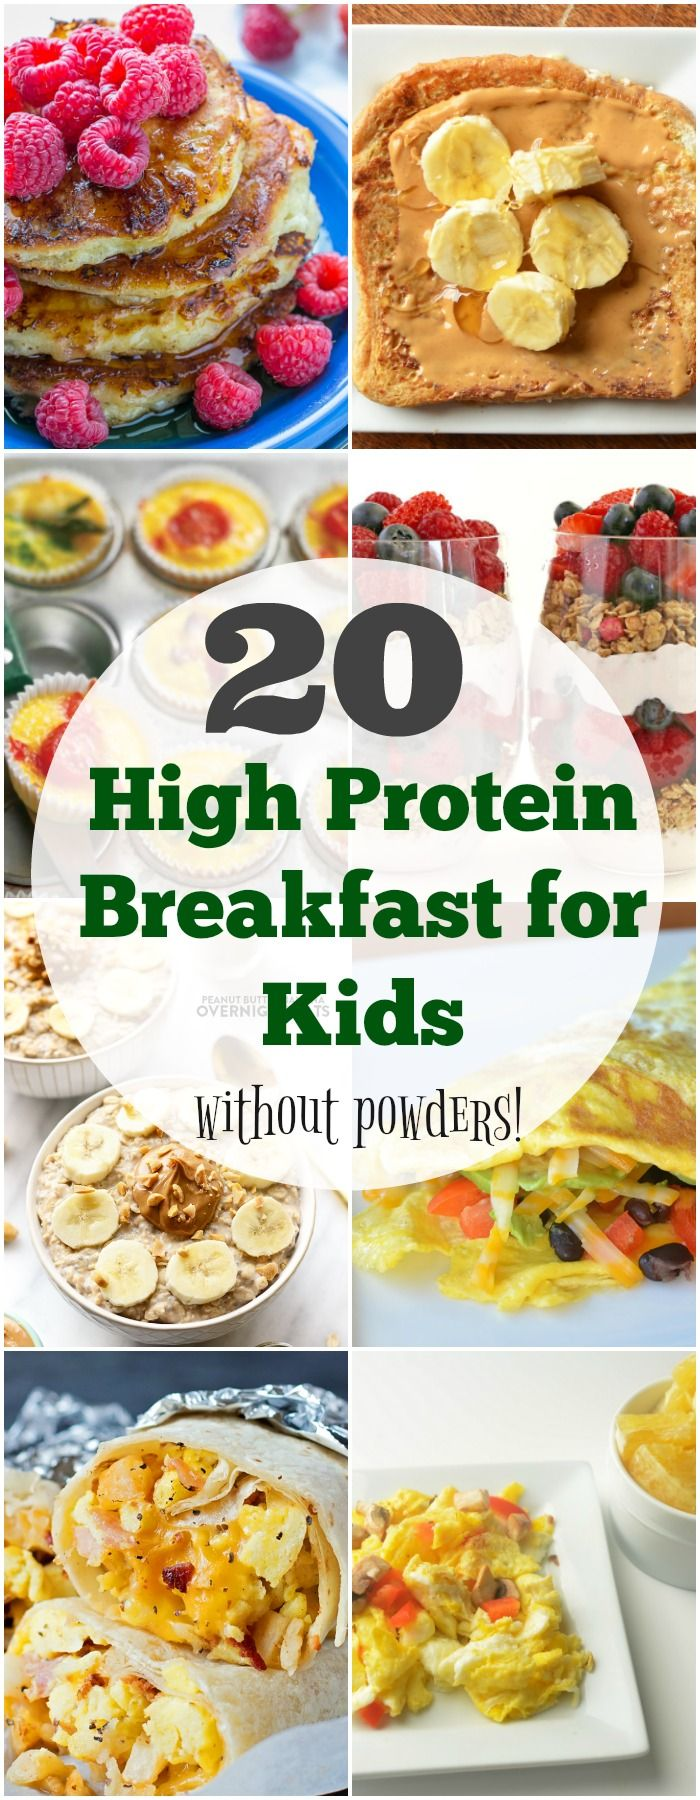 Recipes And Cooking 20 Of The Best High Protein Breakfast Ideas For Kids Breakfast For Kids High Protein Breakfast Baby Food Recipes